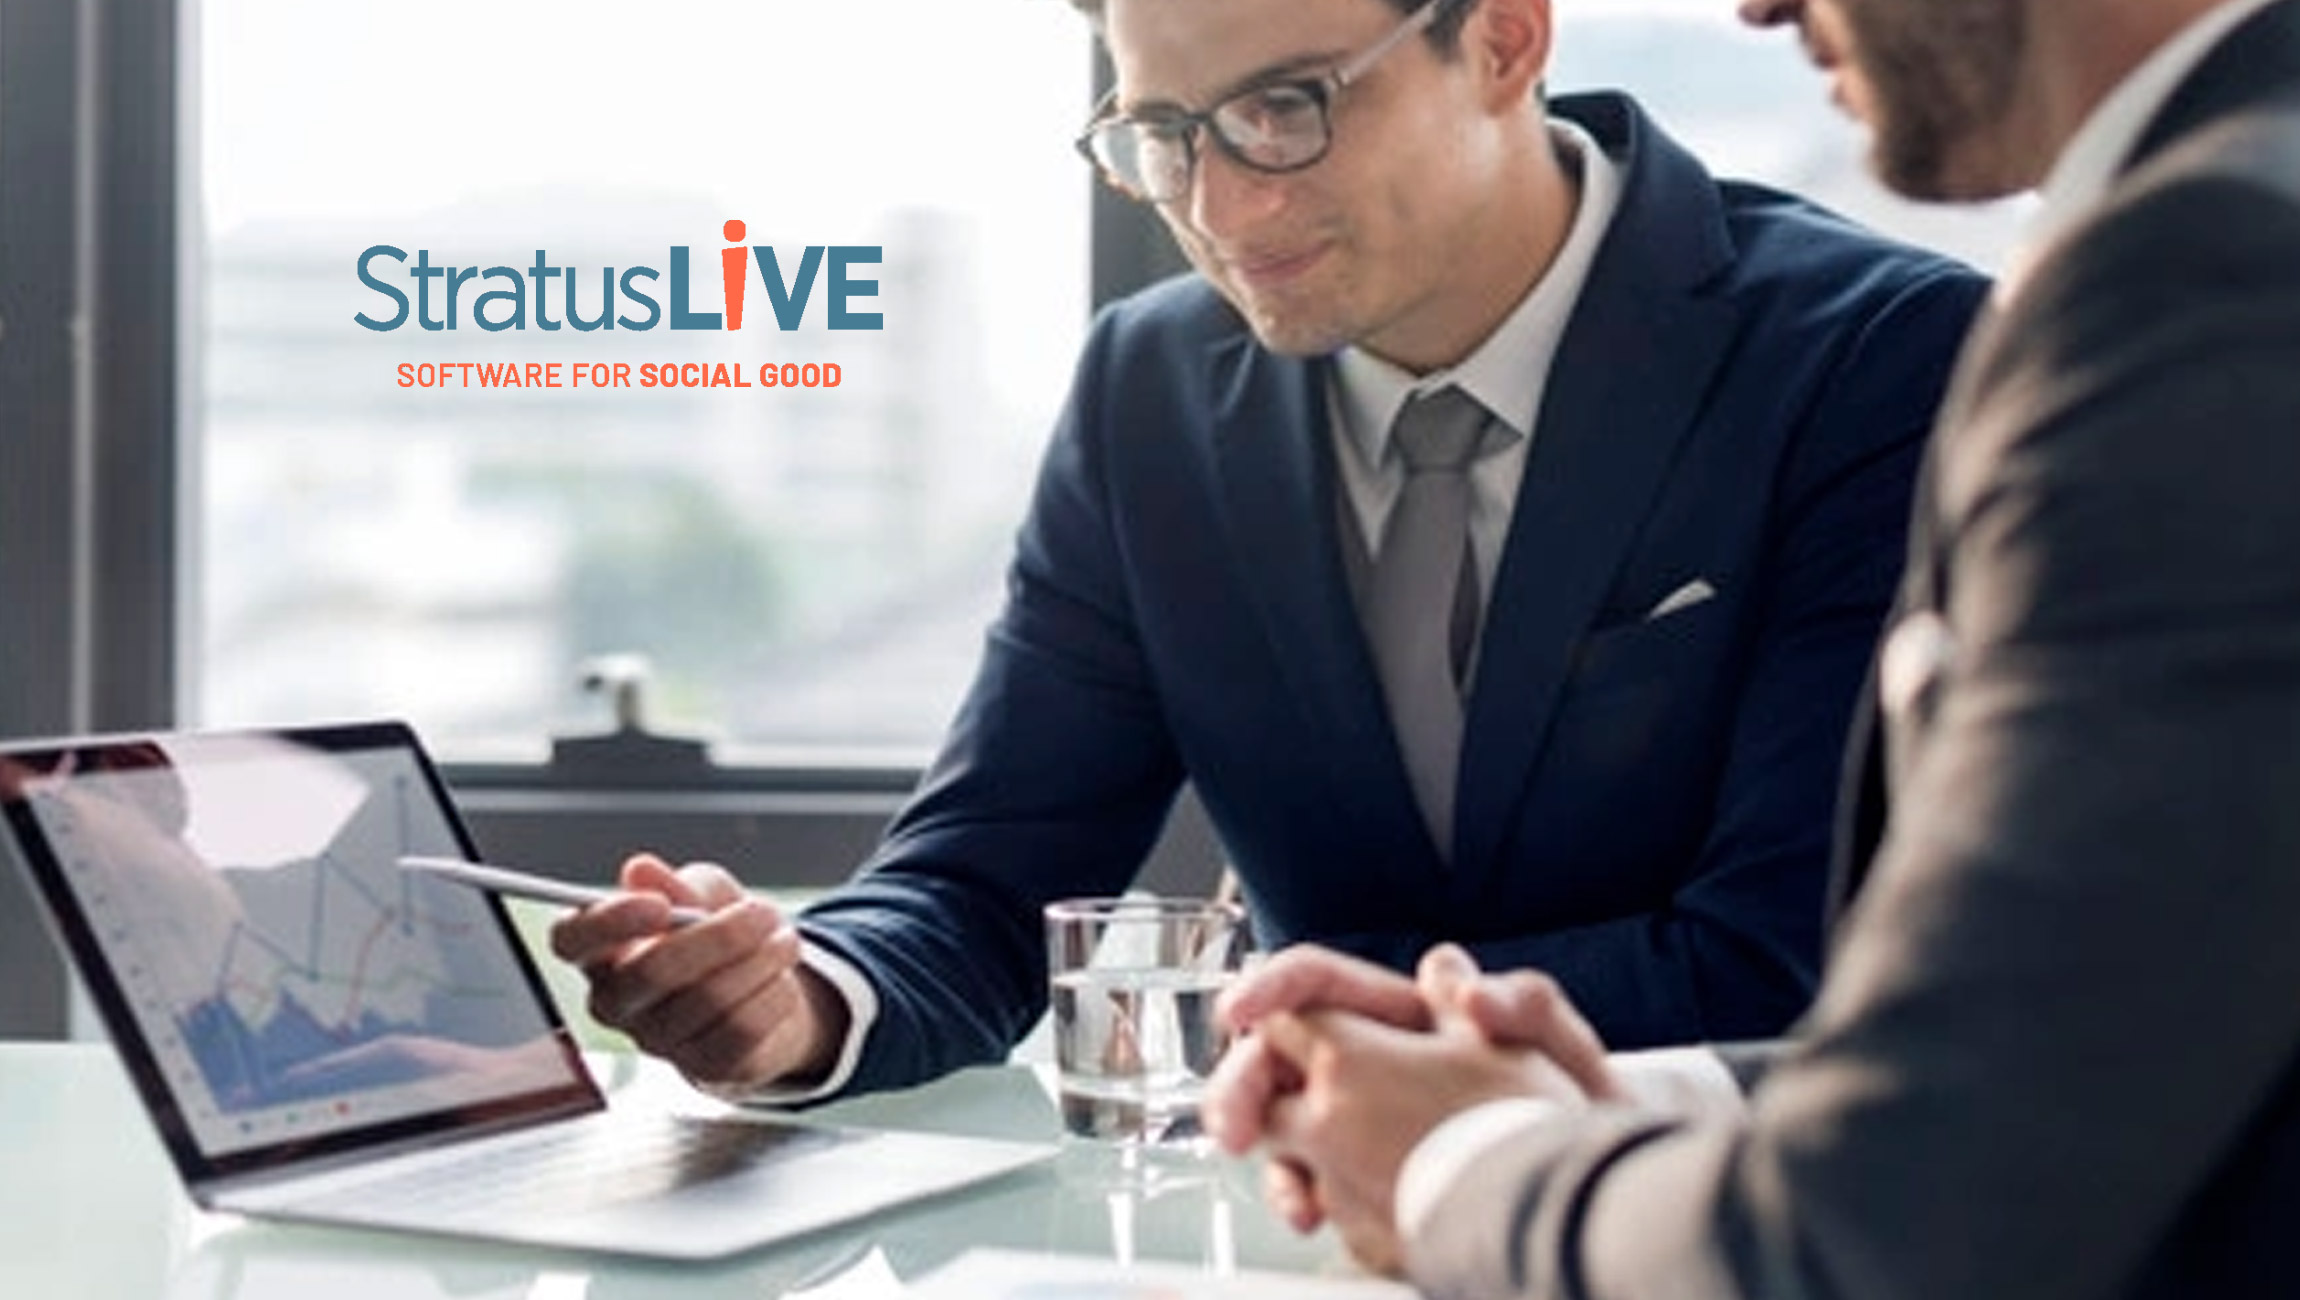 StratusLIVE and iWave Form Strategic Relationship to Empower Nonprofits to Enhance Donor Prospecting and Fundraising Results